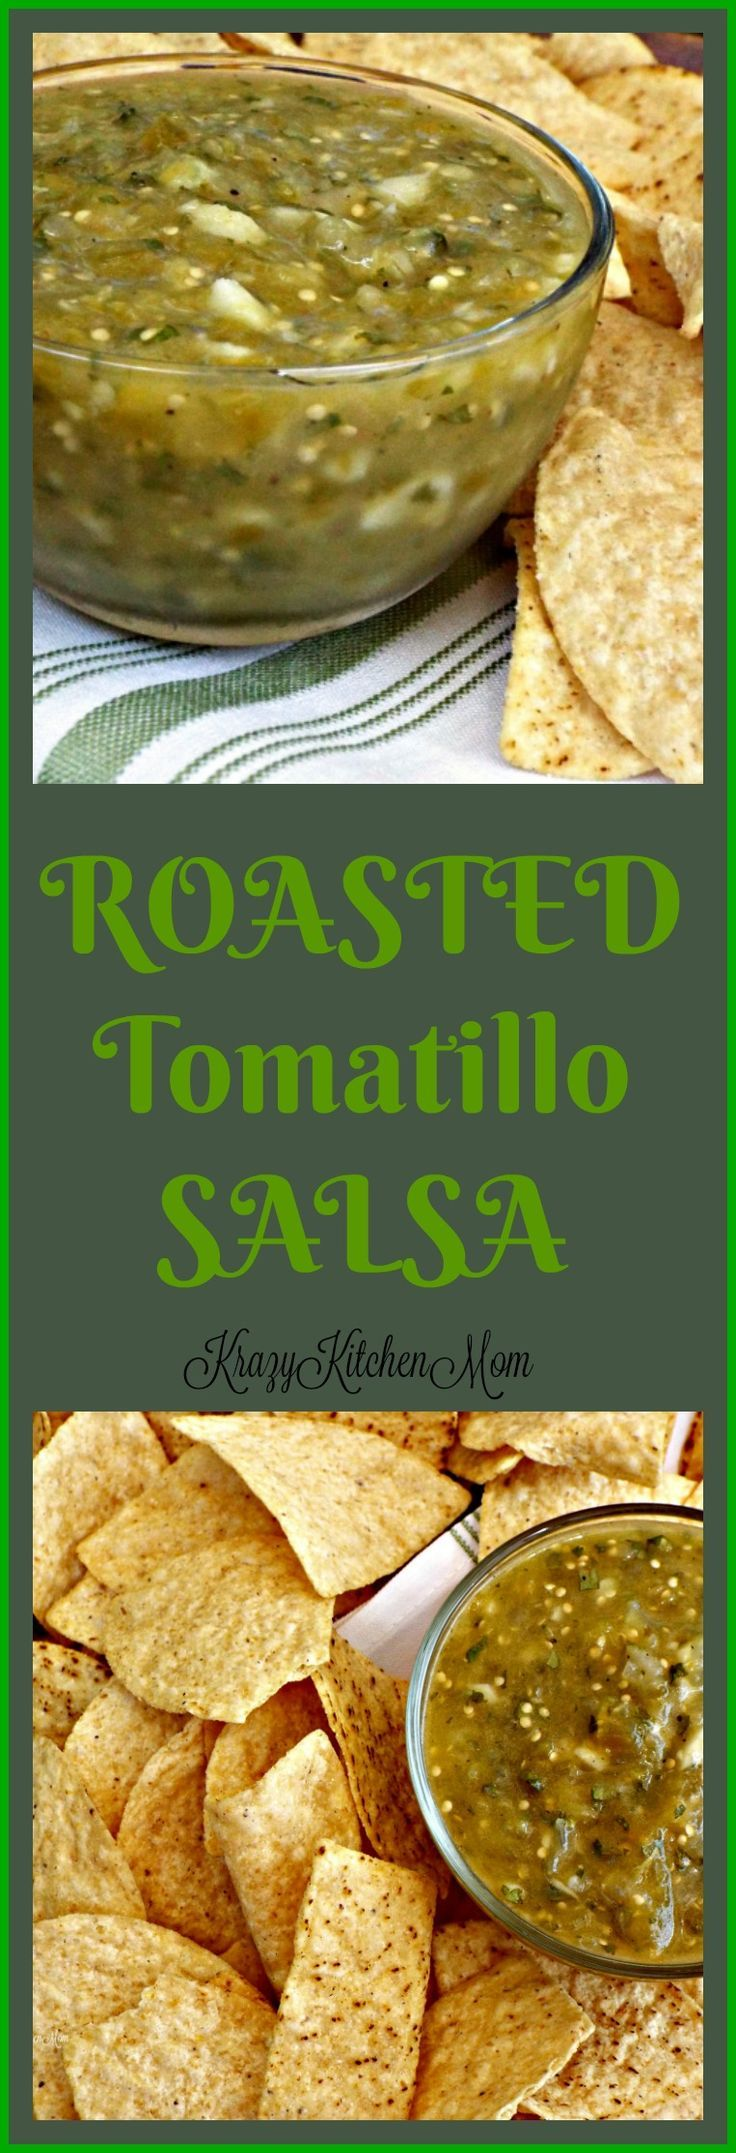 Roasted Tomatillo Salsa or Salsas Verde gets it's intense robust flavors by roasting the vegetables in olive oil and salt and pepper before blending.